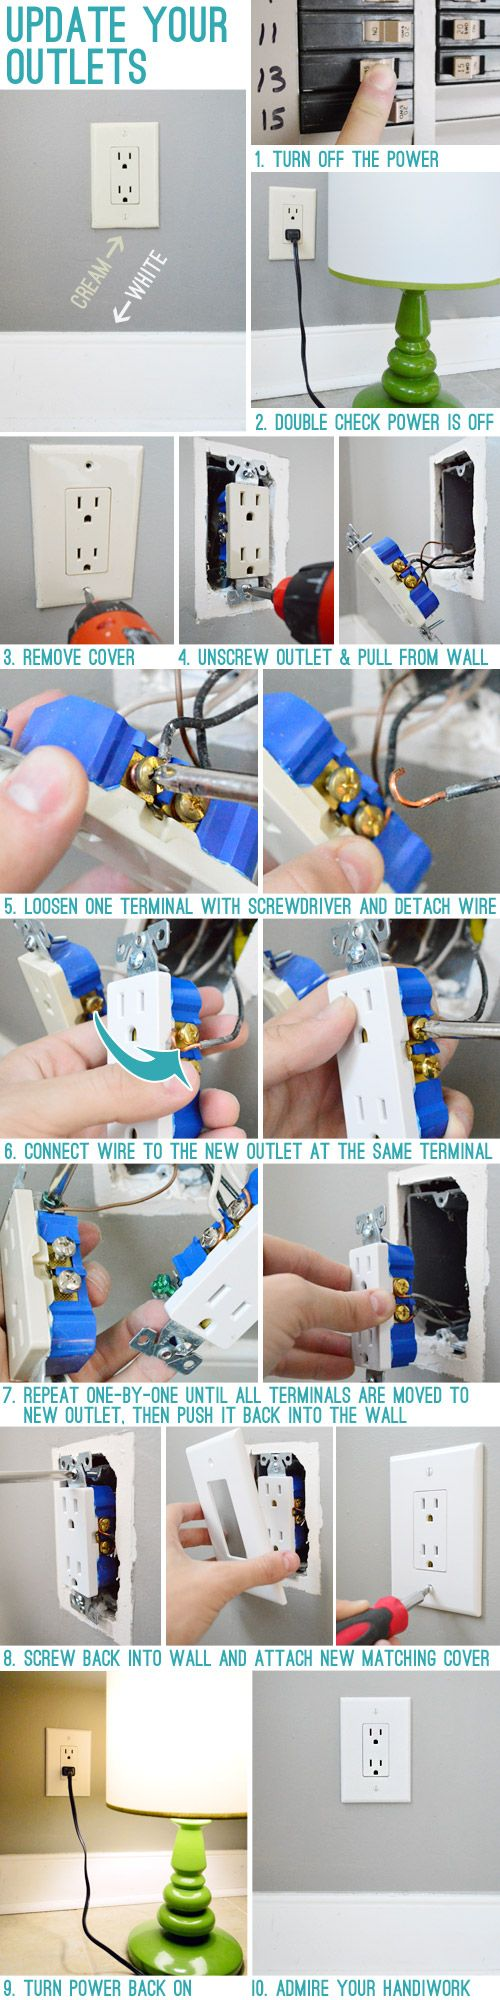 How To Update Your Outlets Step By Pics Dream Home Do It Yourself Wiring I Am Moving A House With Gaudy Gold Faceplates From The 70s And Need This Tutorial For Myself